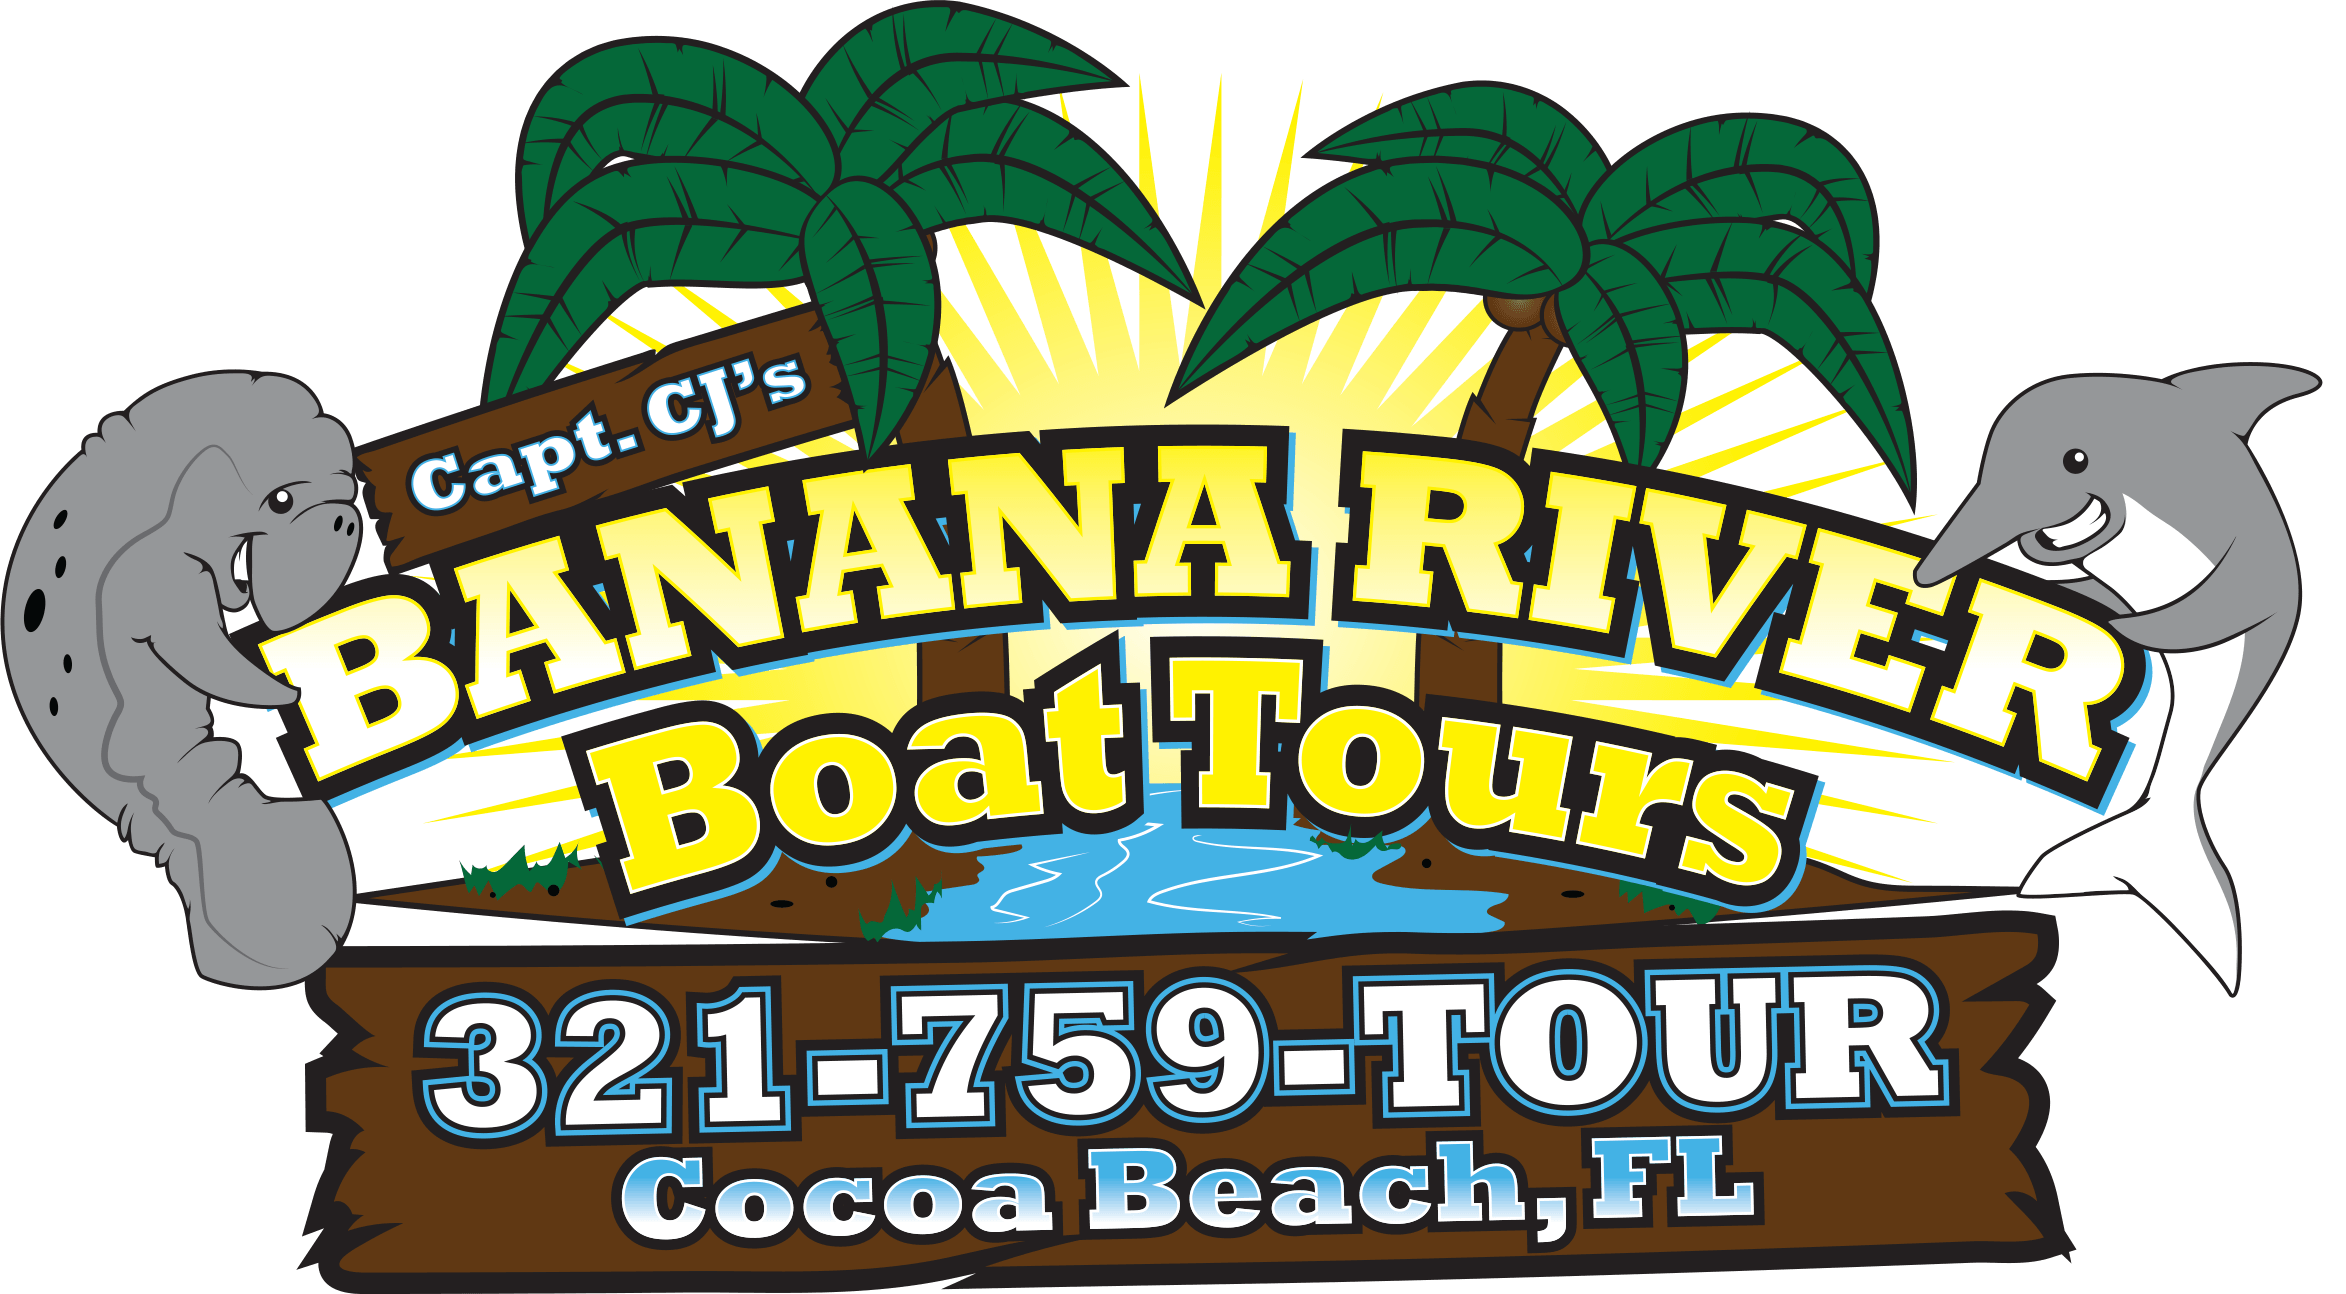 Rocket Launch Viewing In Cape Canaveral Fl Banana River Boat Tours